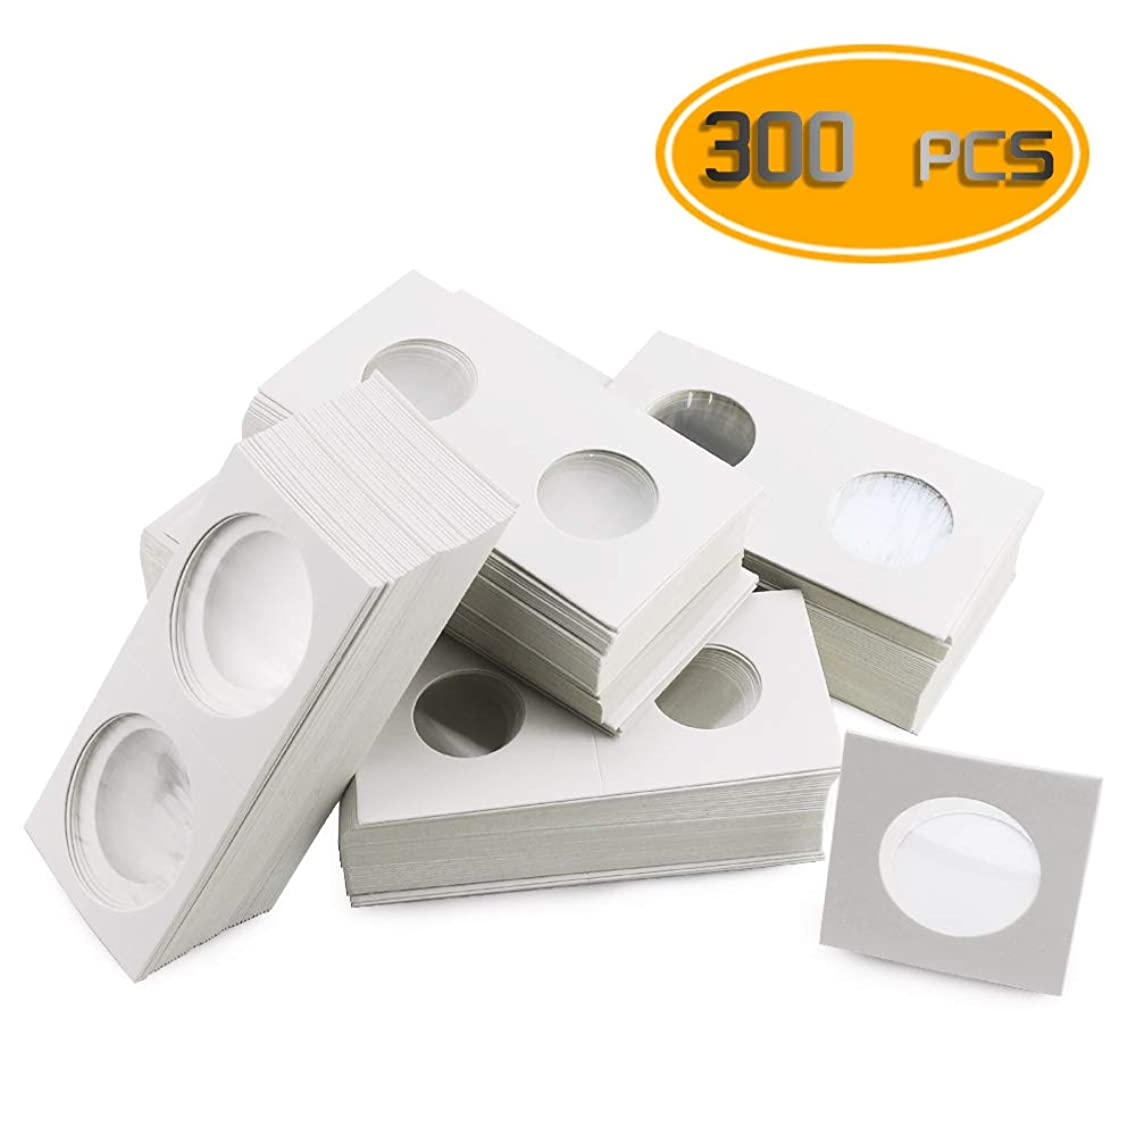 Nexxxi 300 Pcs Cardboard Coin Holder, 6 Sizes 2